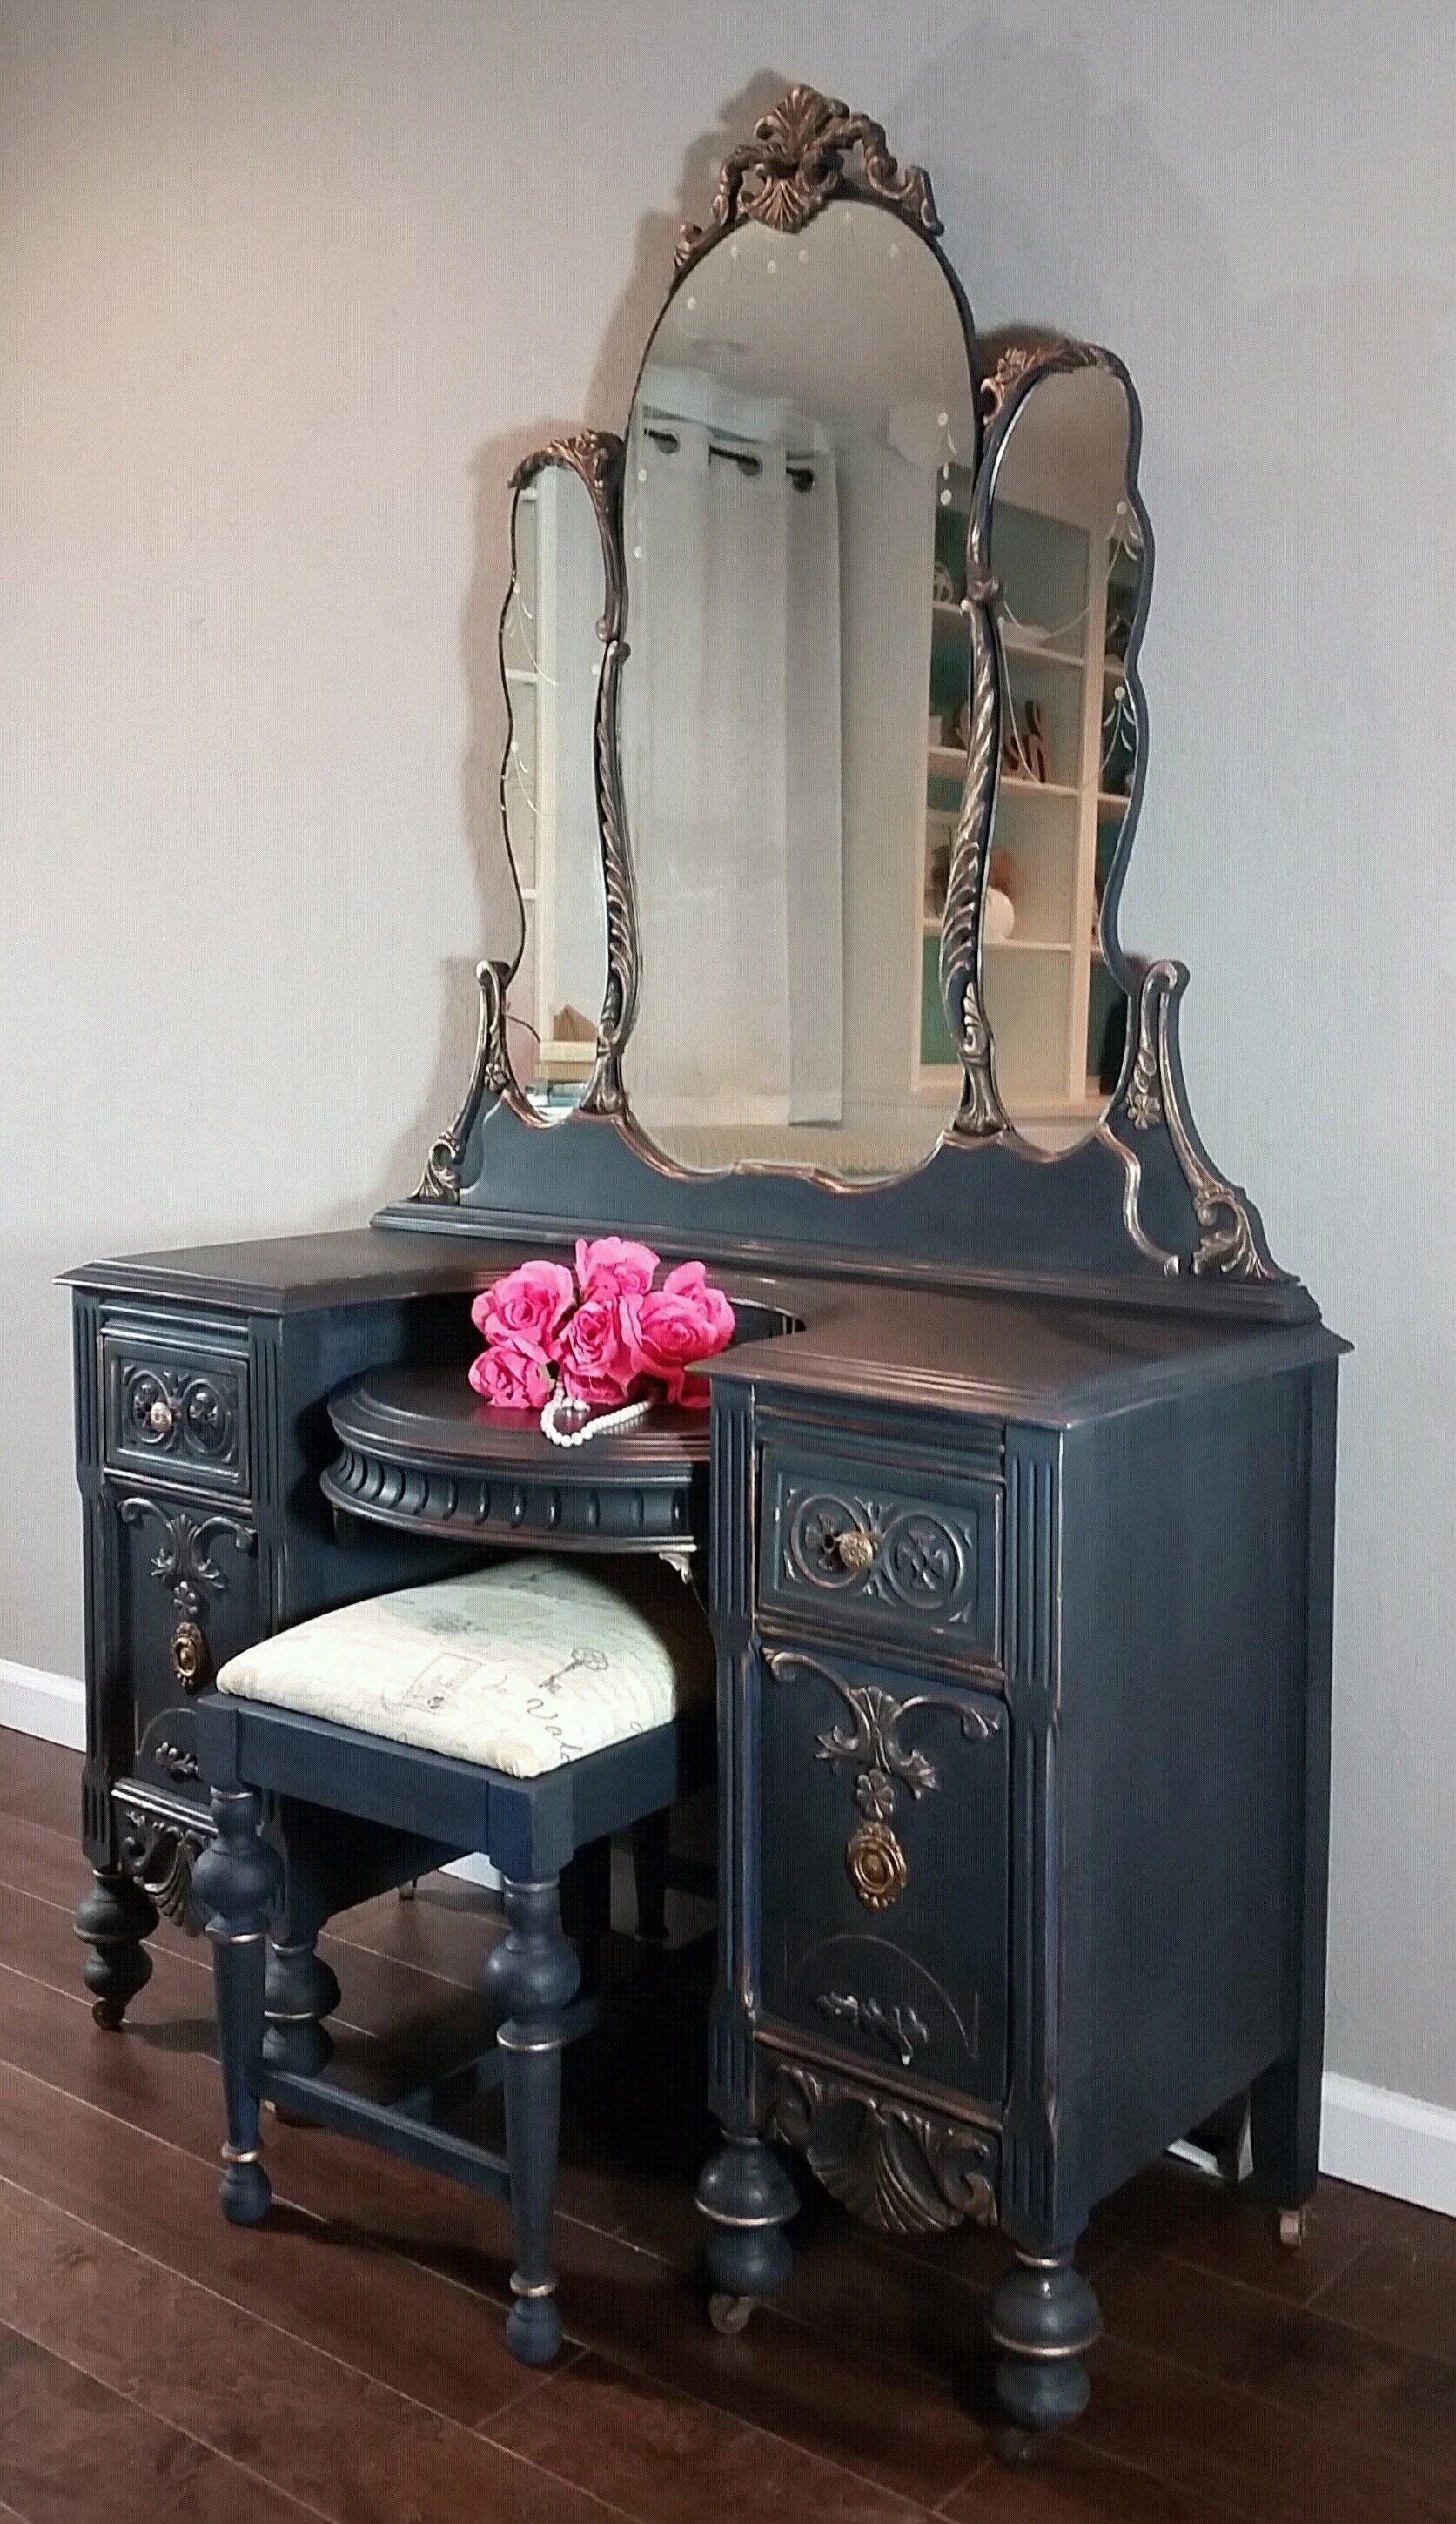 Ornate antique vanity annie sloan graphite with black wax and gold gilding visit us at facebook com rustiquelegance